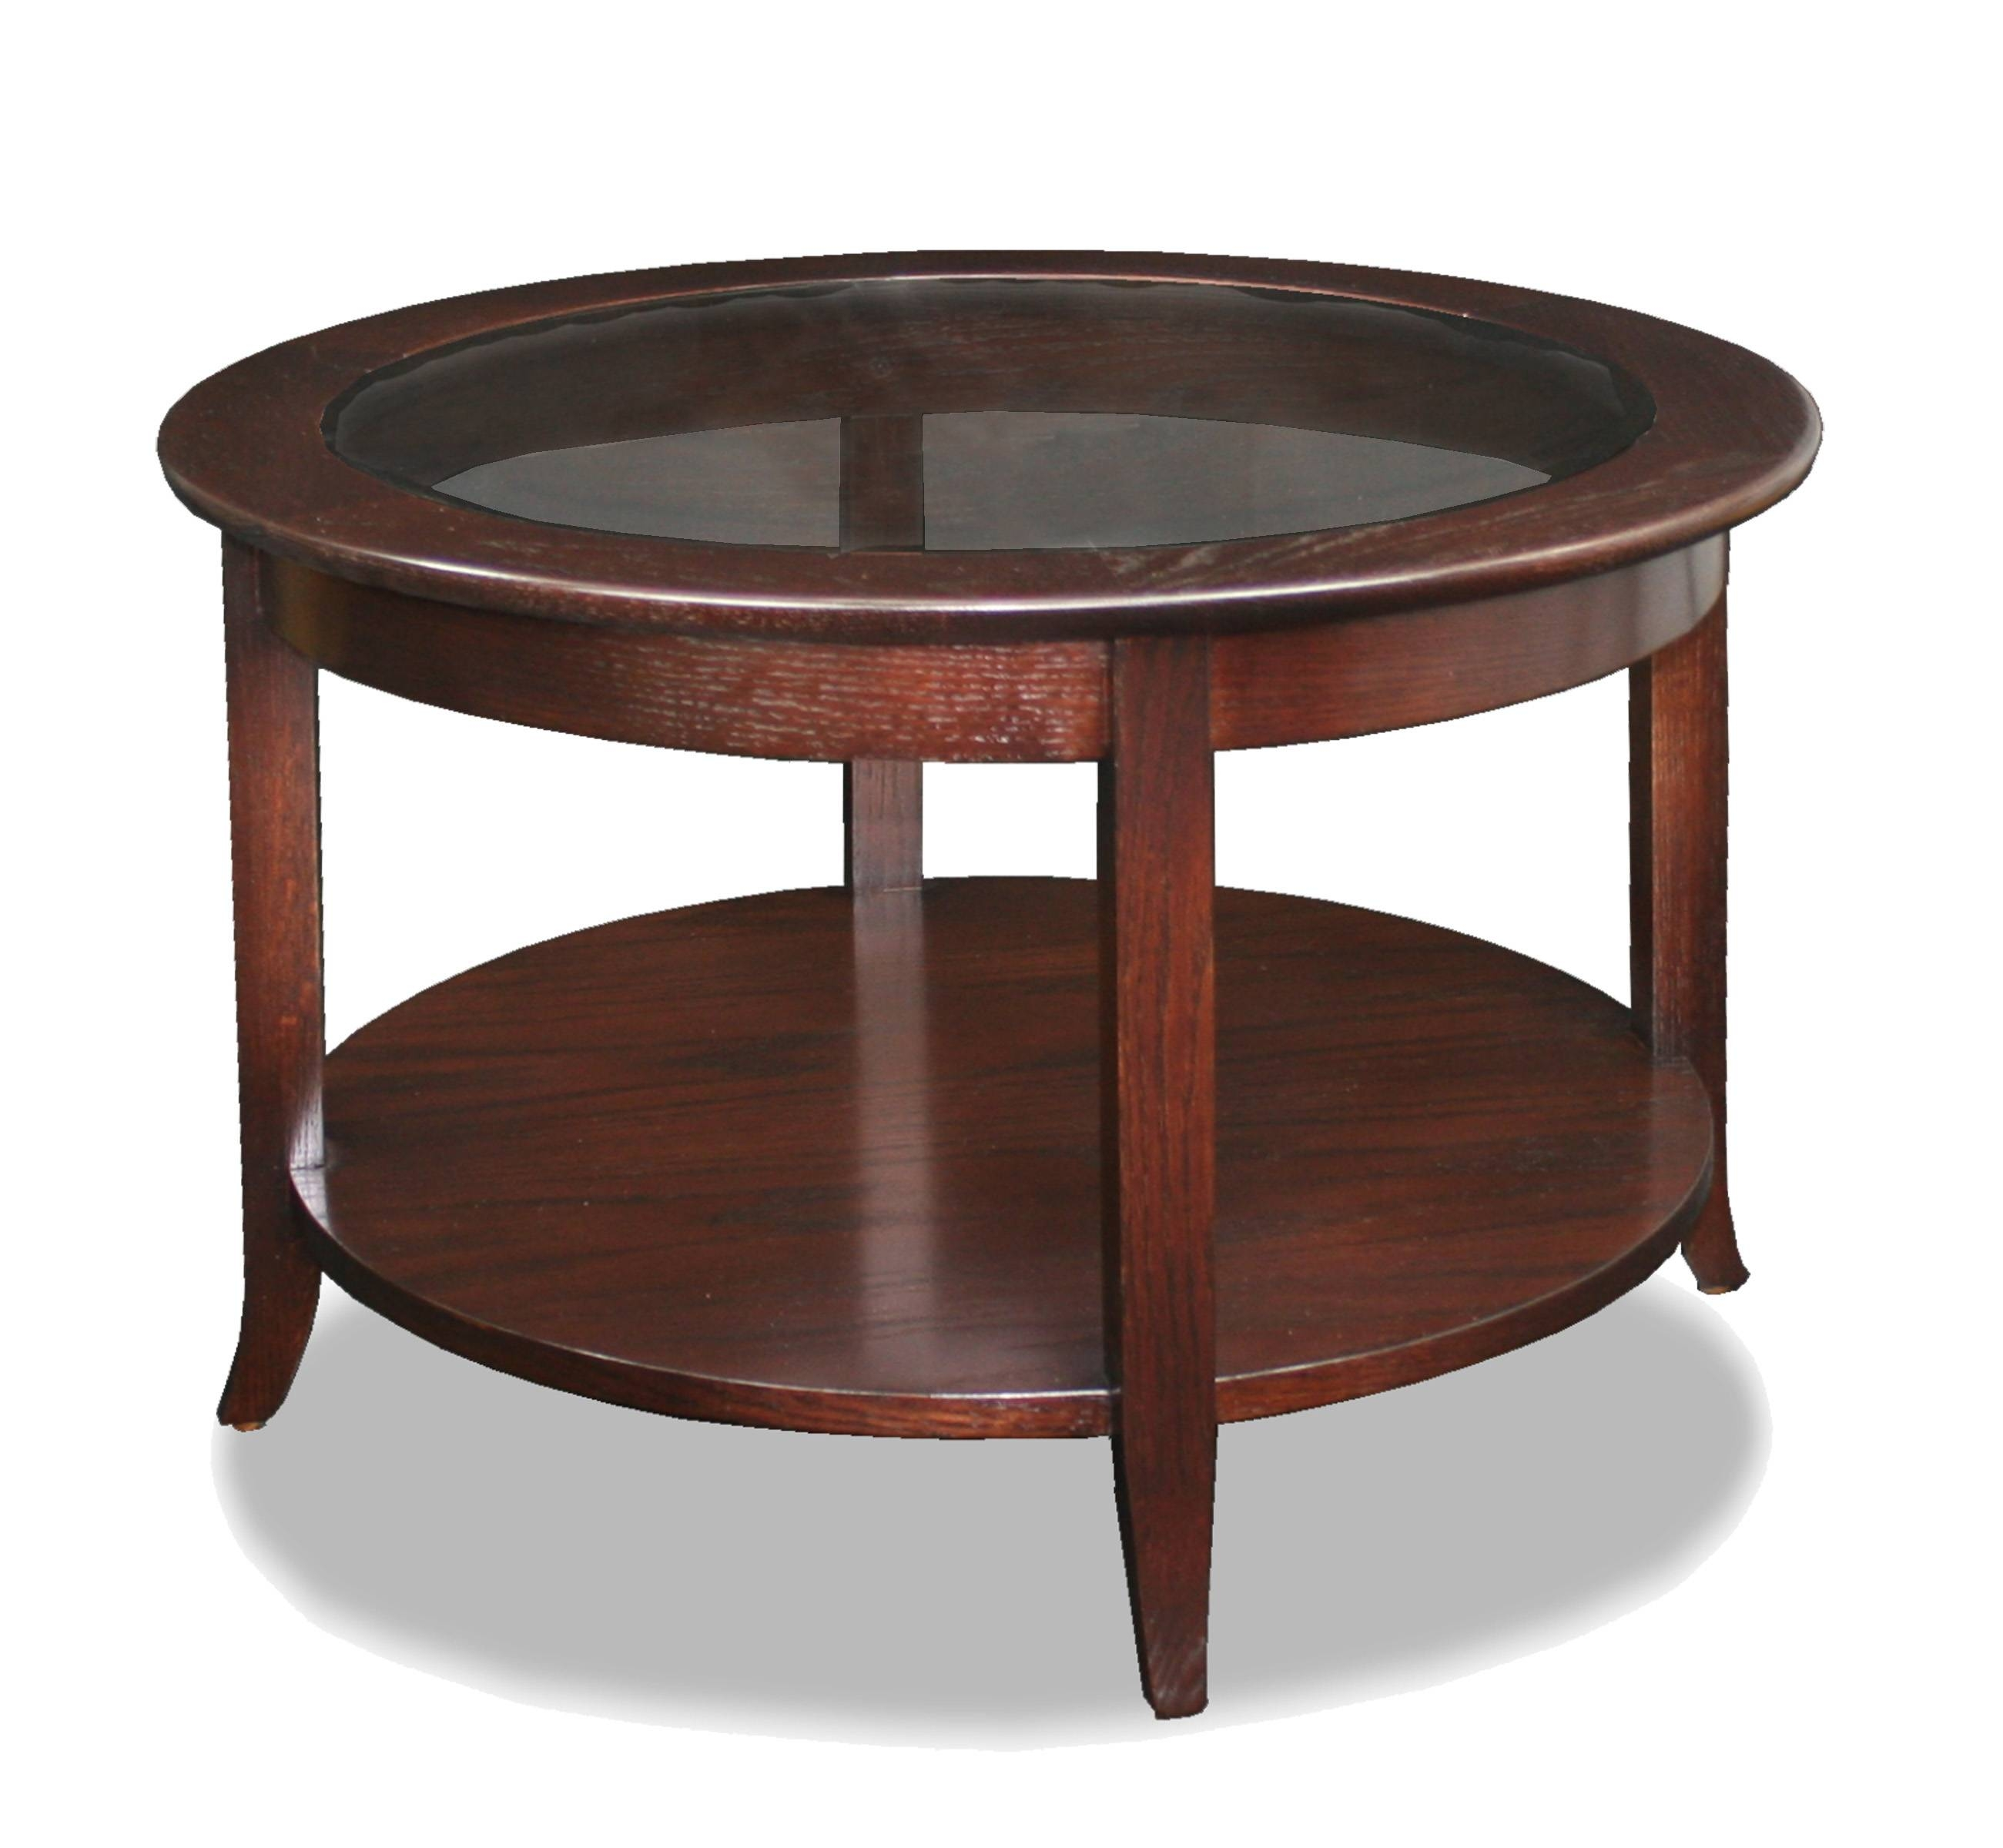 30 Best Ideas of Rounded Corner Coffee Tables